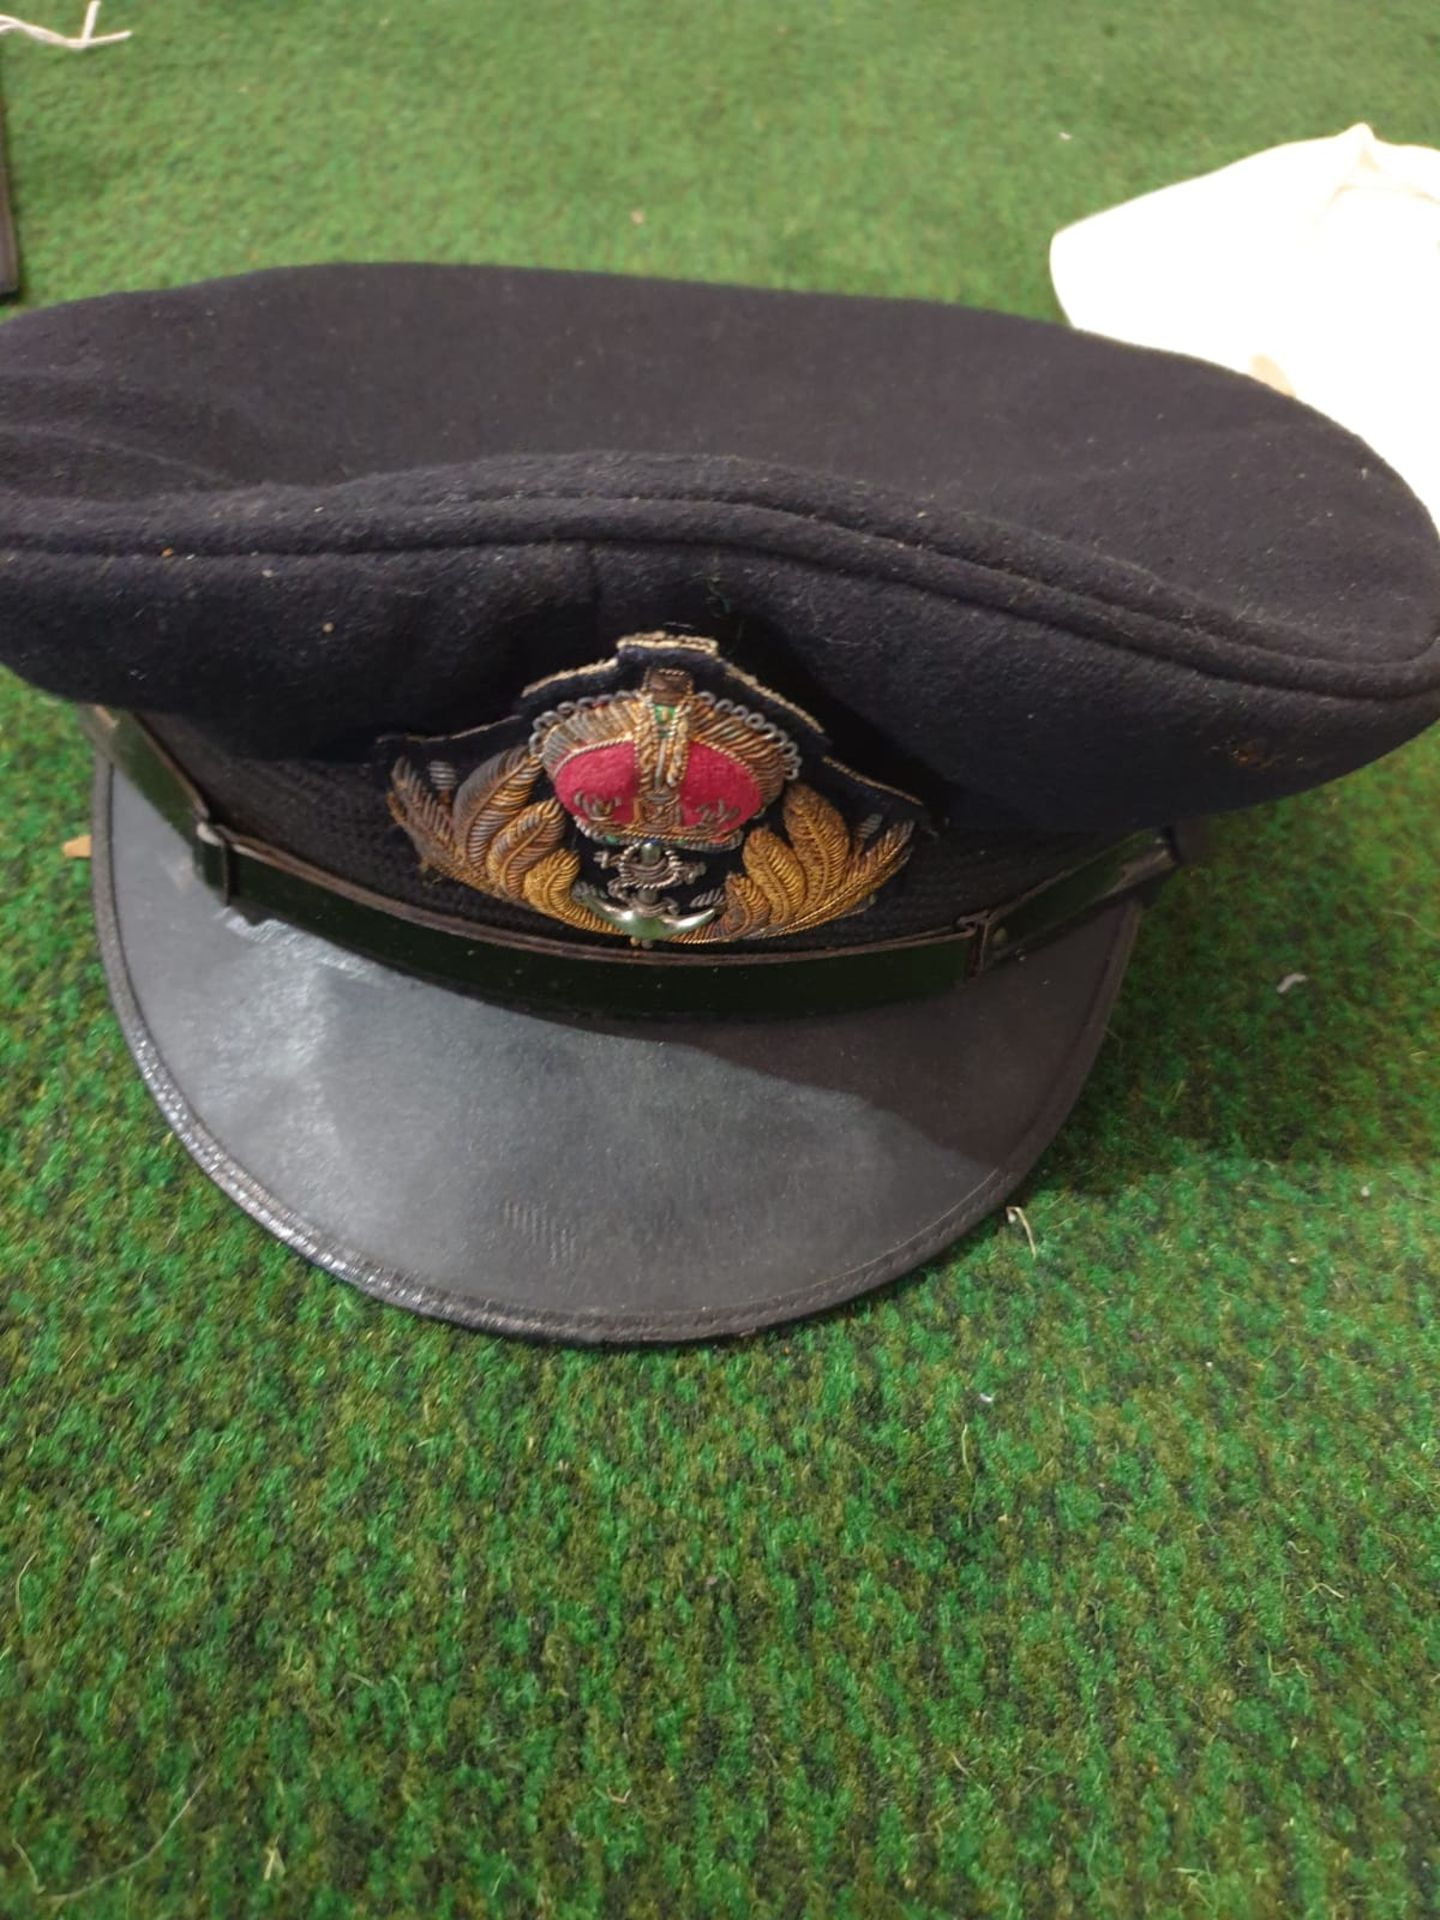 A Lock & Co London Naval peak cap and a Hunters Top hat by Harman & Son Hatters, 87 New Bond - Image 2 of 4